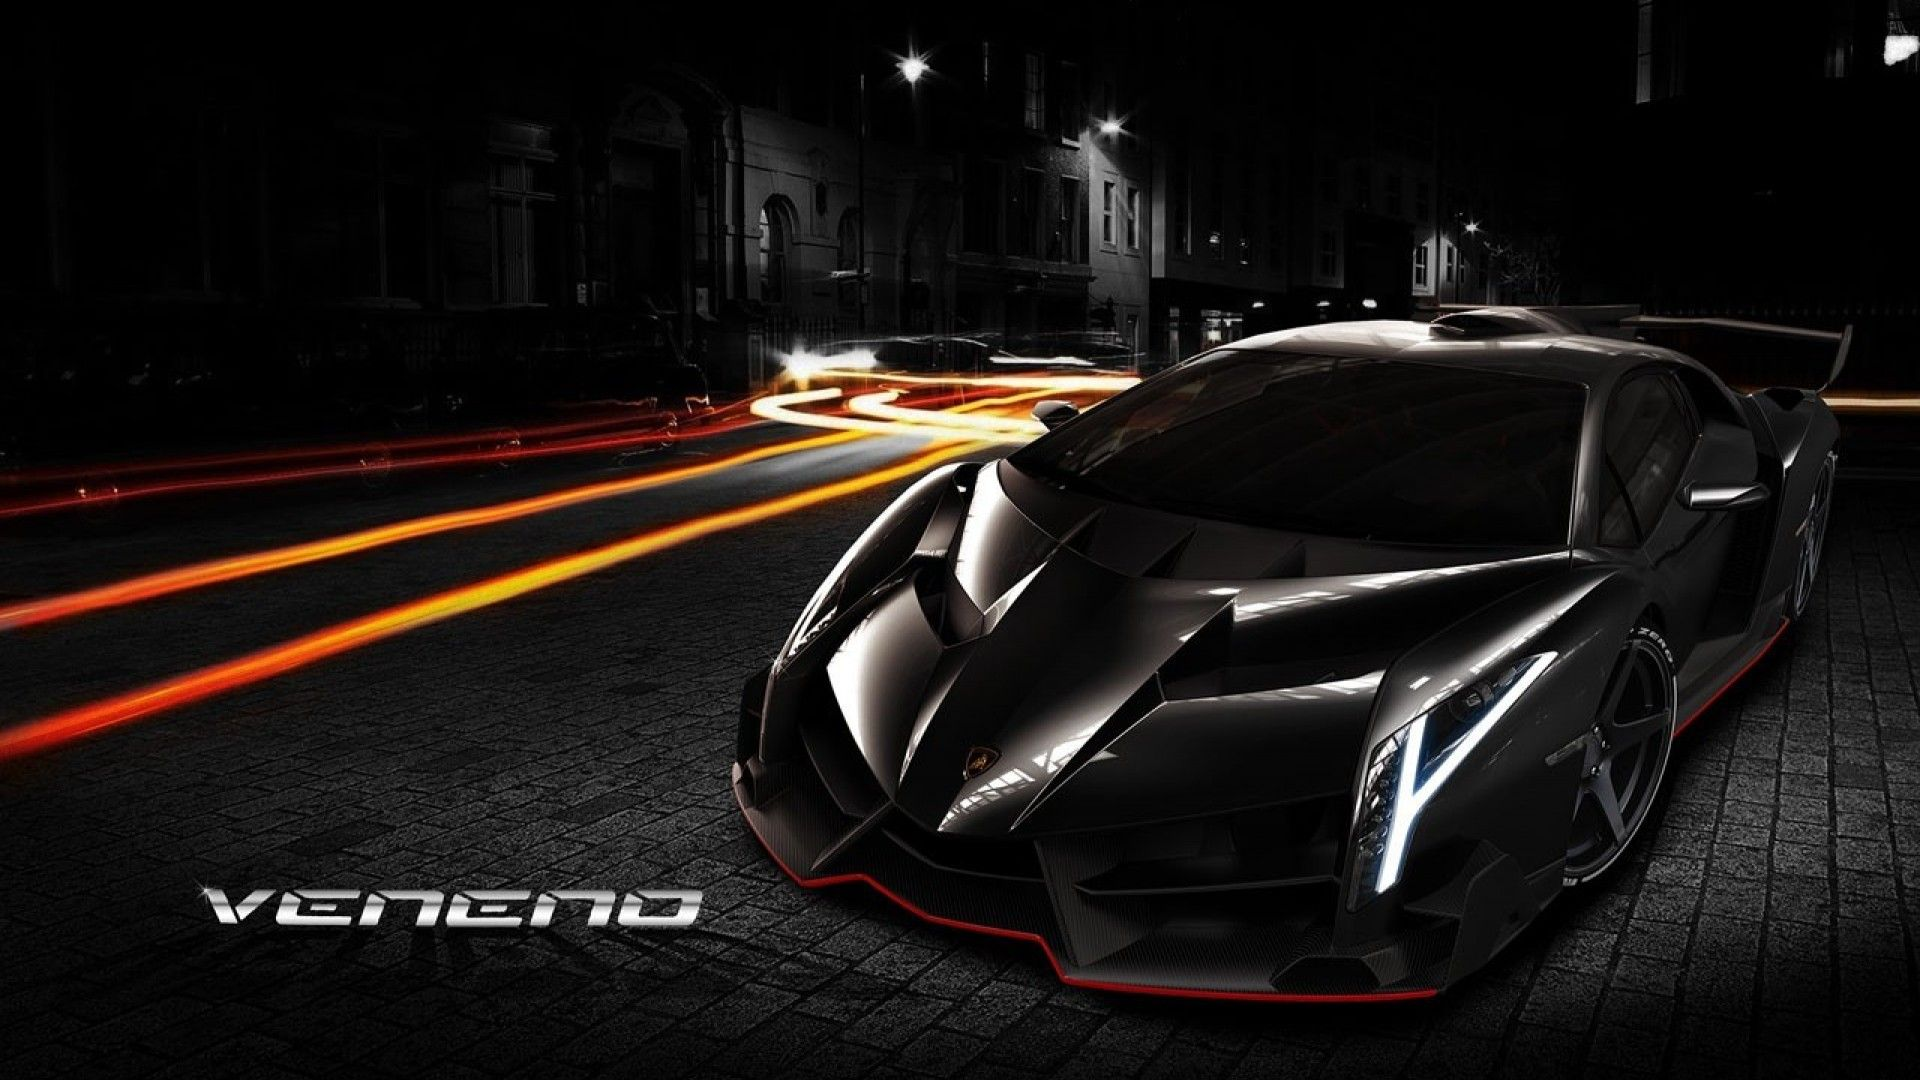 hd wallpapar lamborghini veneno roadster - http://www.youthsportfoto